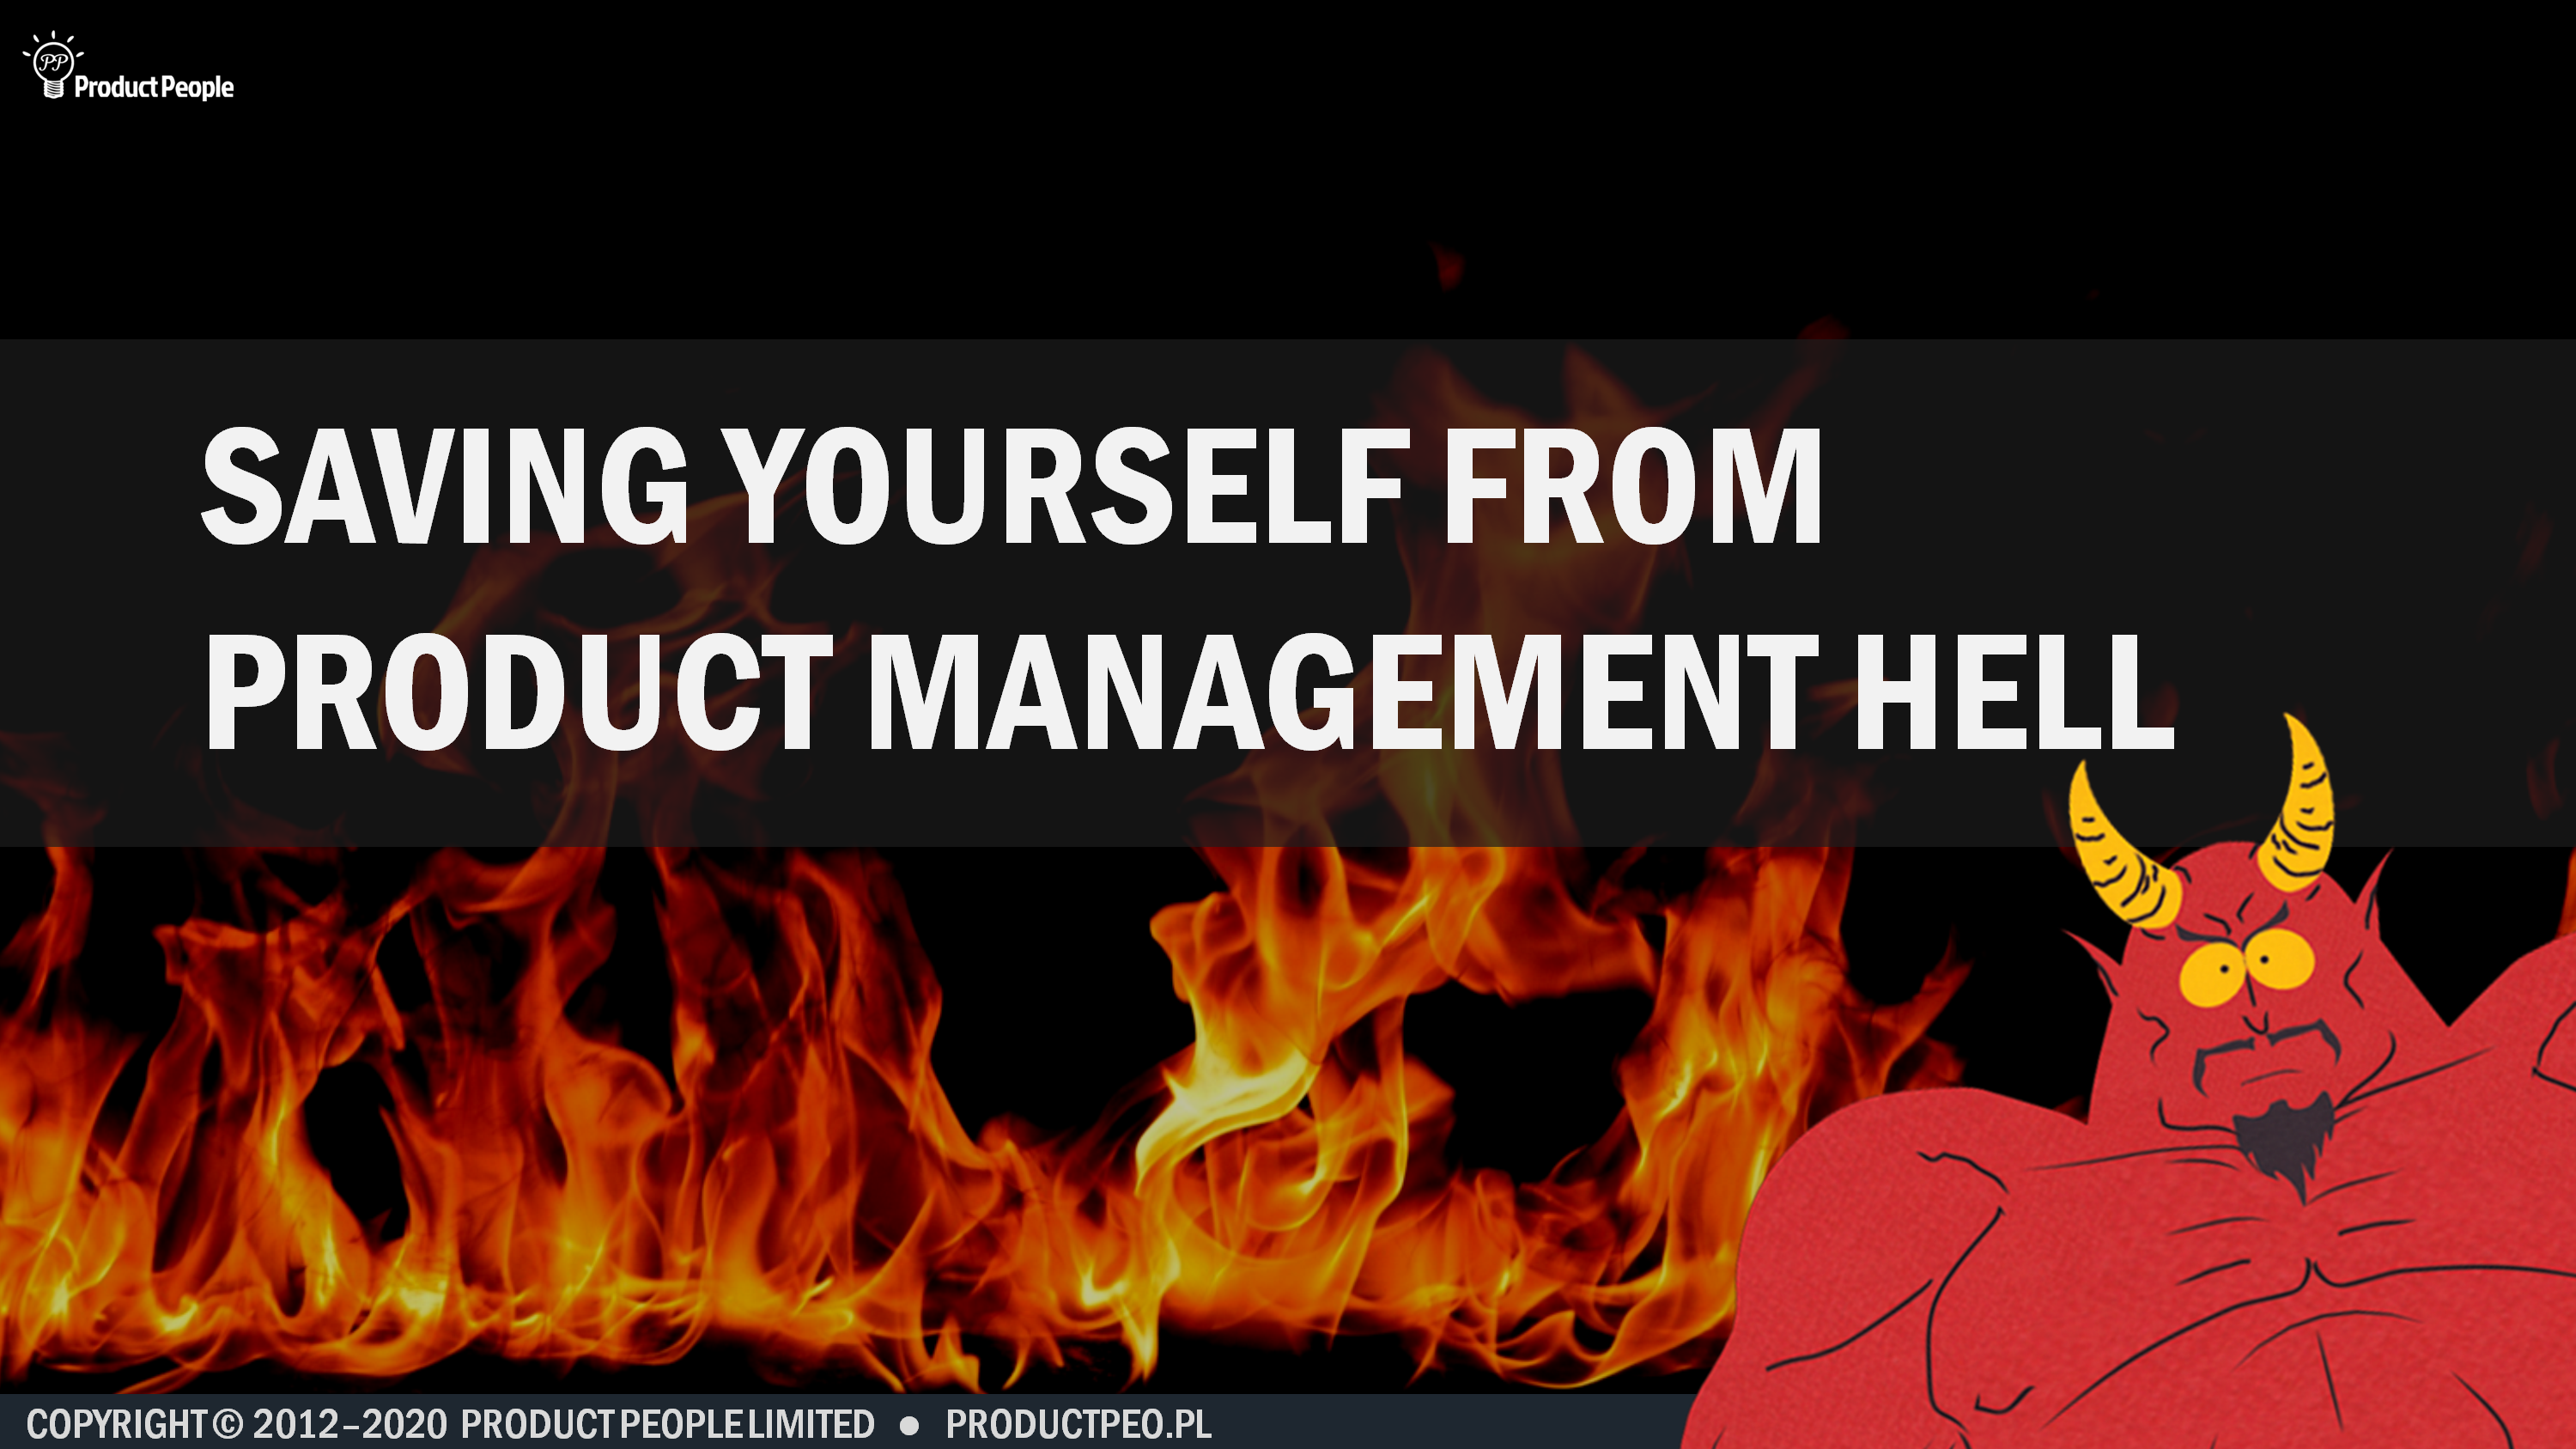 Saving yourself from product management hell